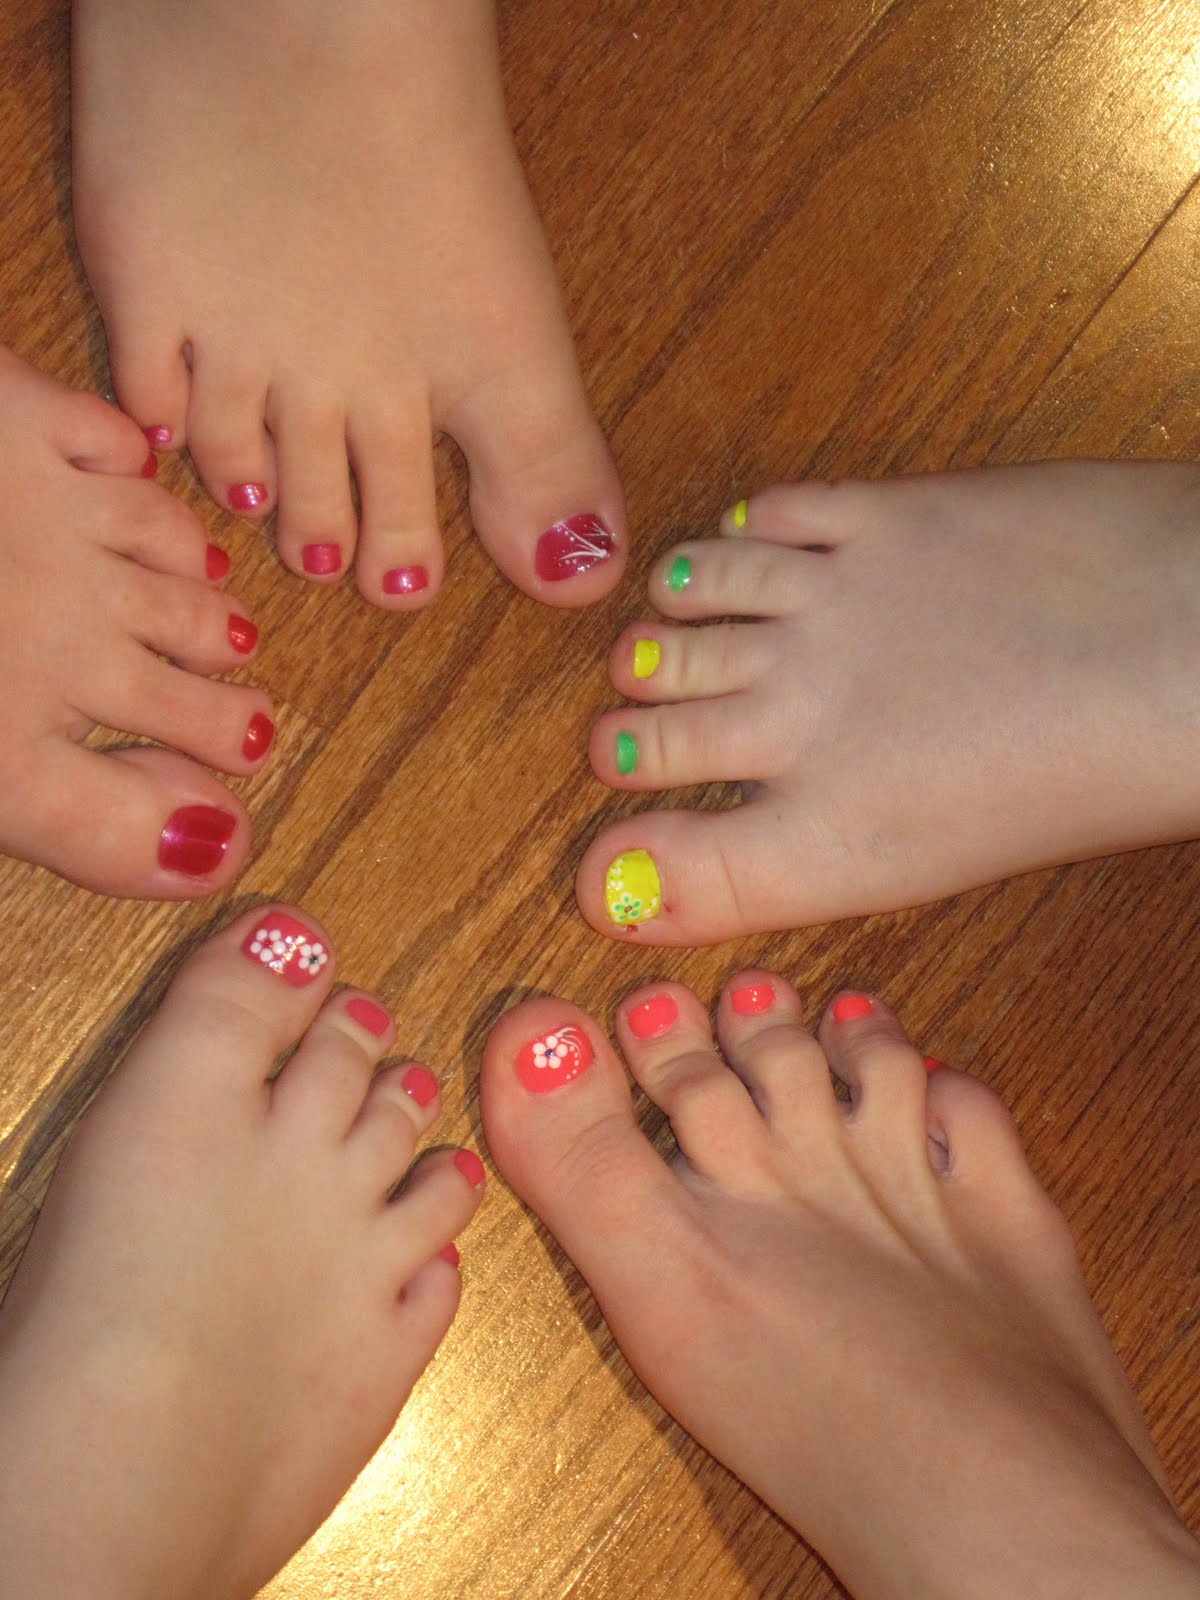 Teen Pedicure Stock Image Image Of Brunette Makeup: Stephtmomof3: First Pedicure